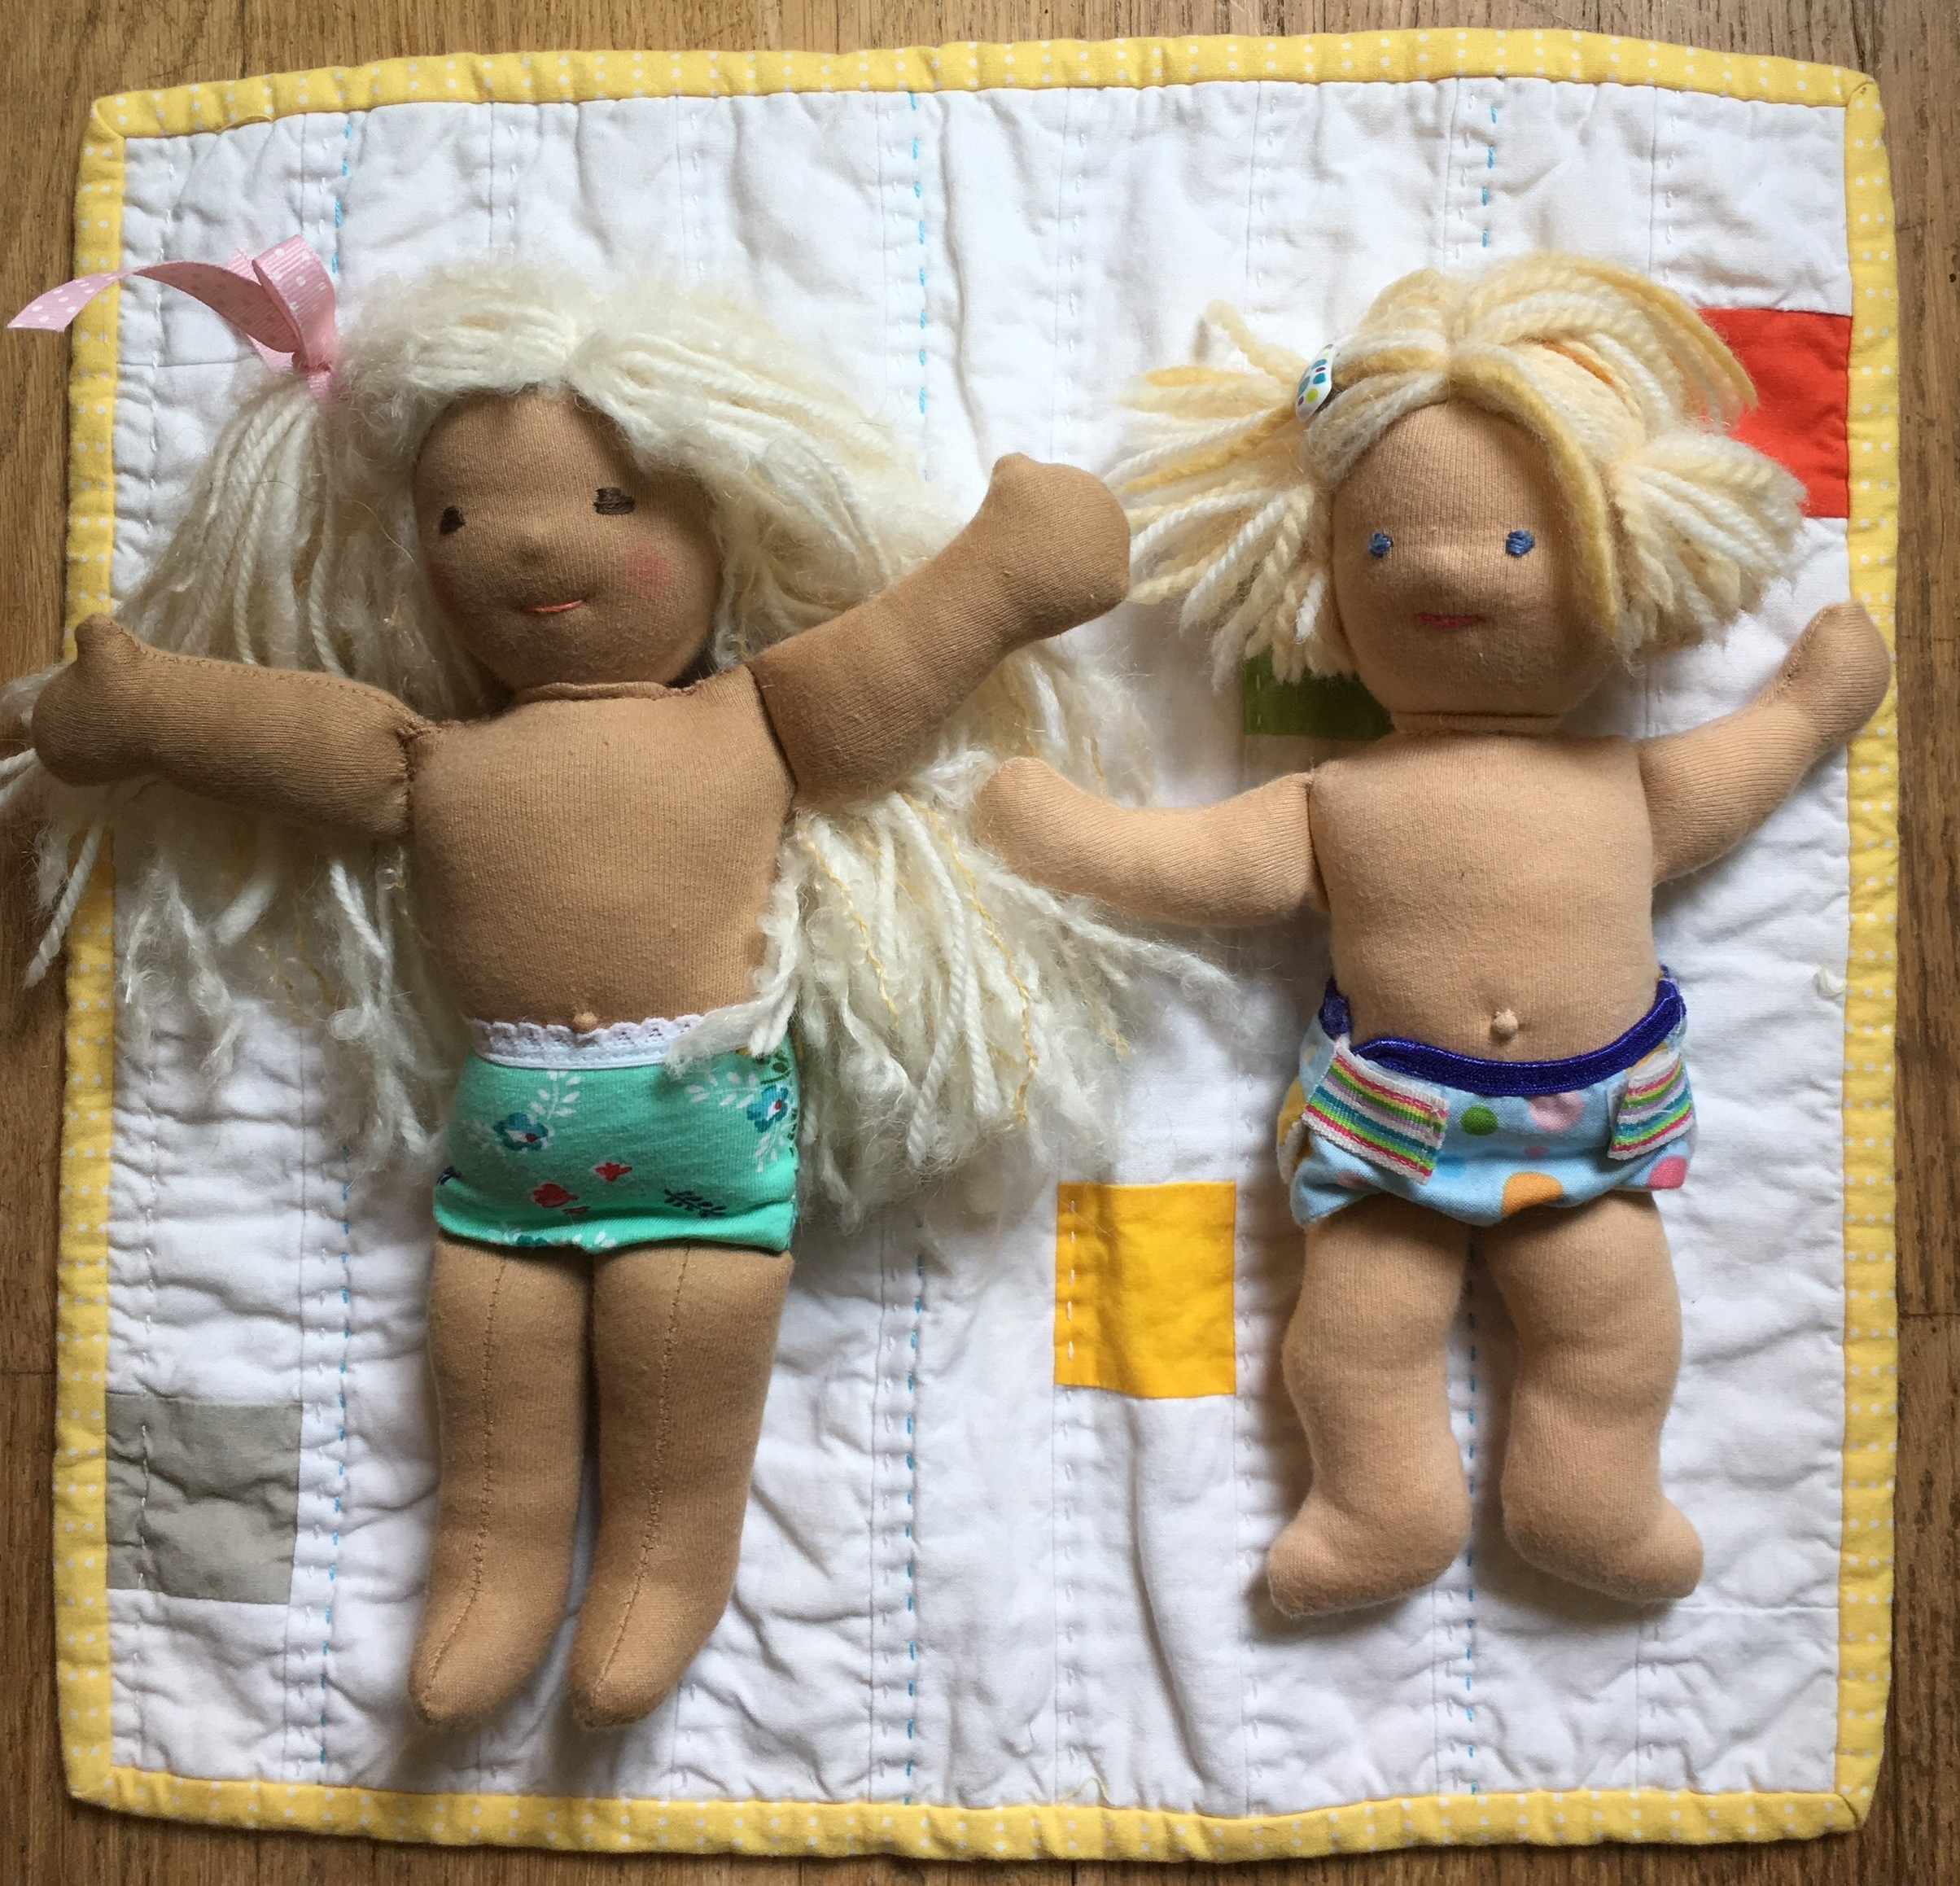 Little girl on the left, baby on the right. Phoebe has dark tan skin and Lucy's is skin is sunkissed